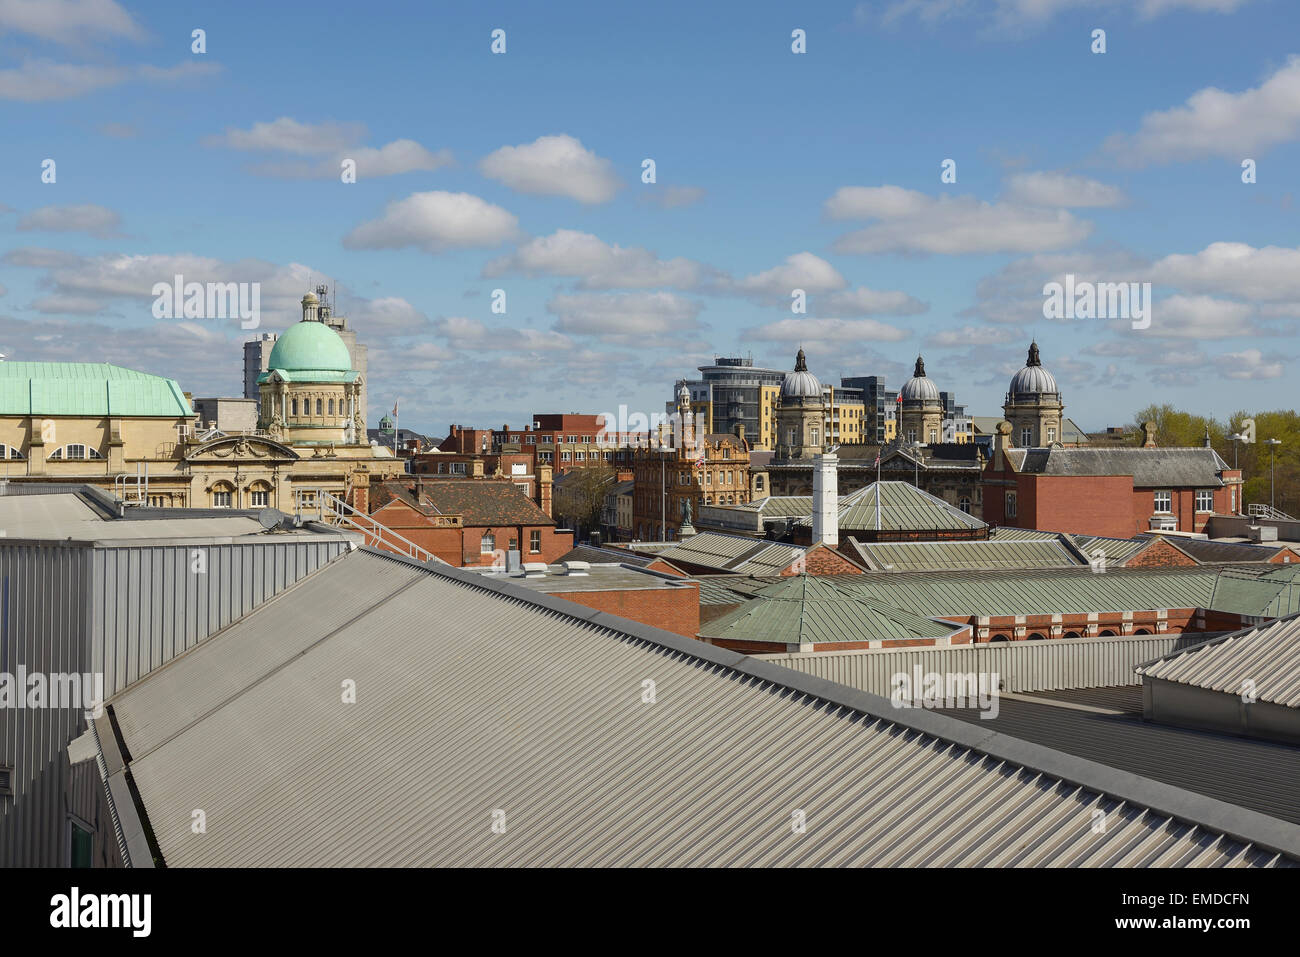 The view across rooftops in Hull city centre including Hull City Hall, The Ferens art gallery and Maritime Museum - Stock Image